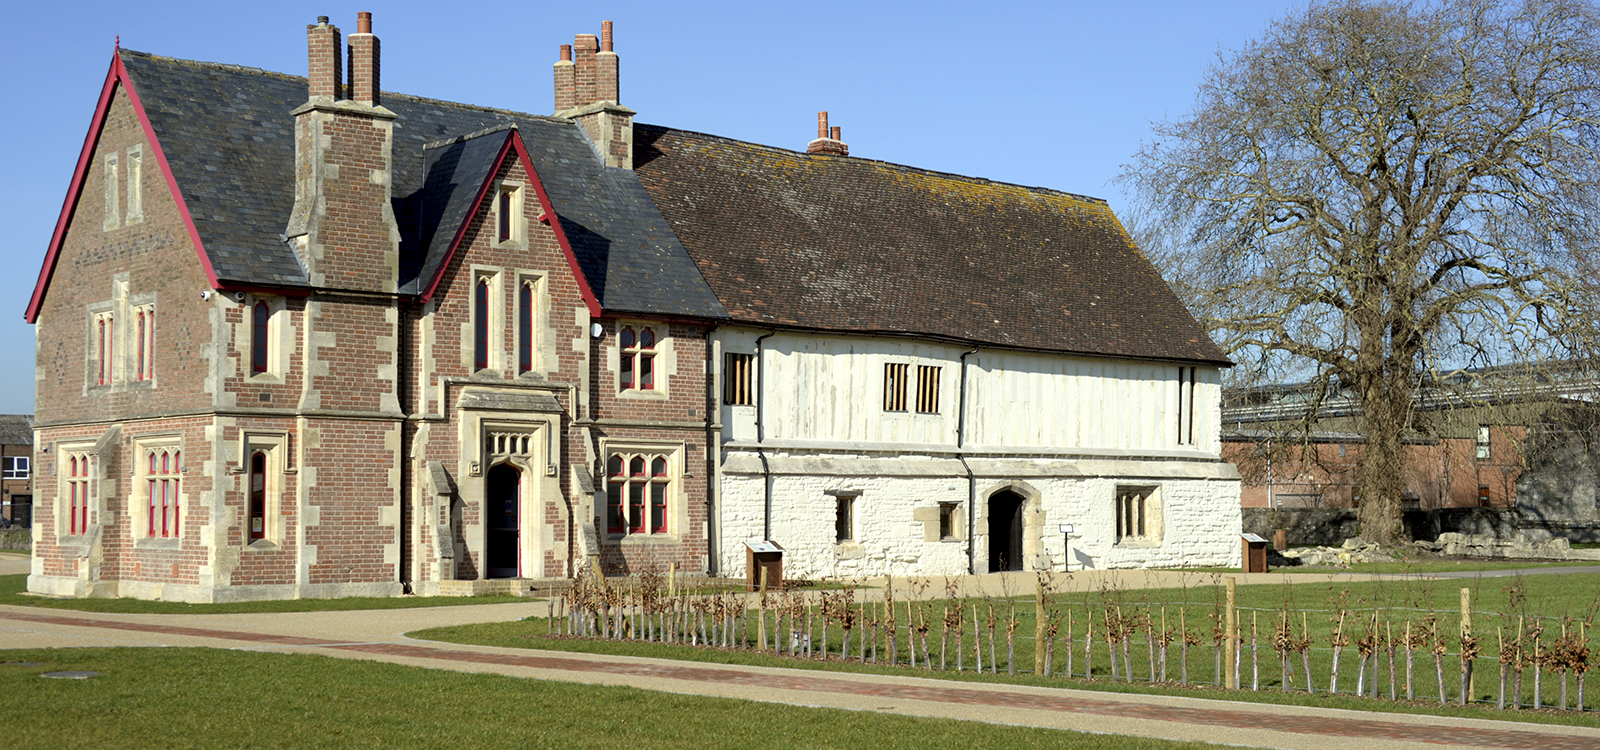 Llanthony Secunda Priory, Gloucester